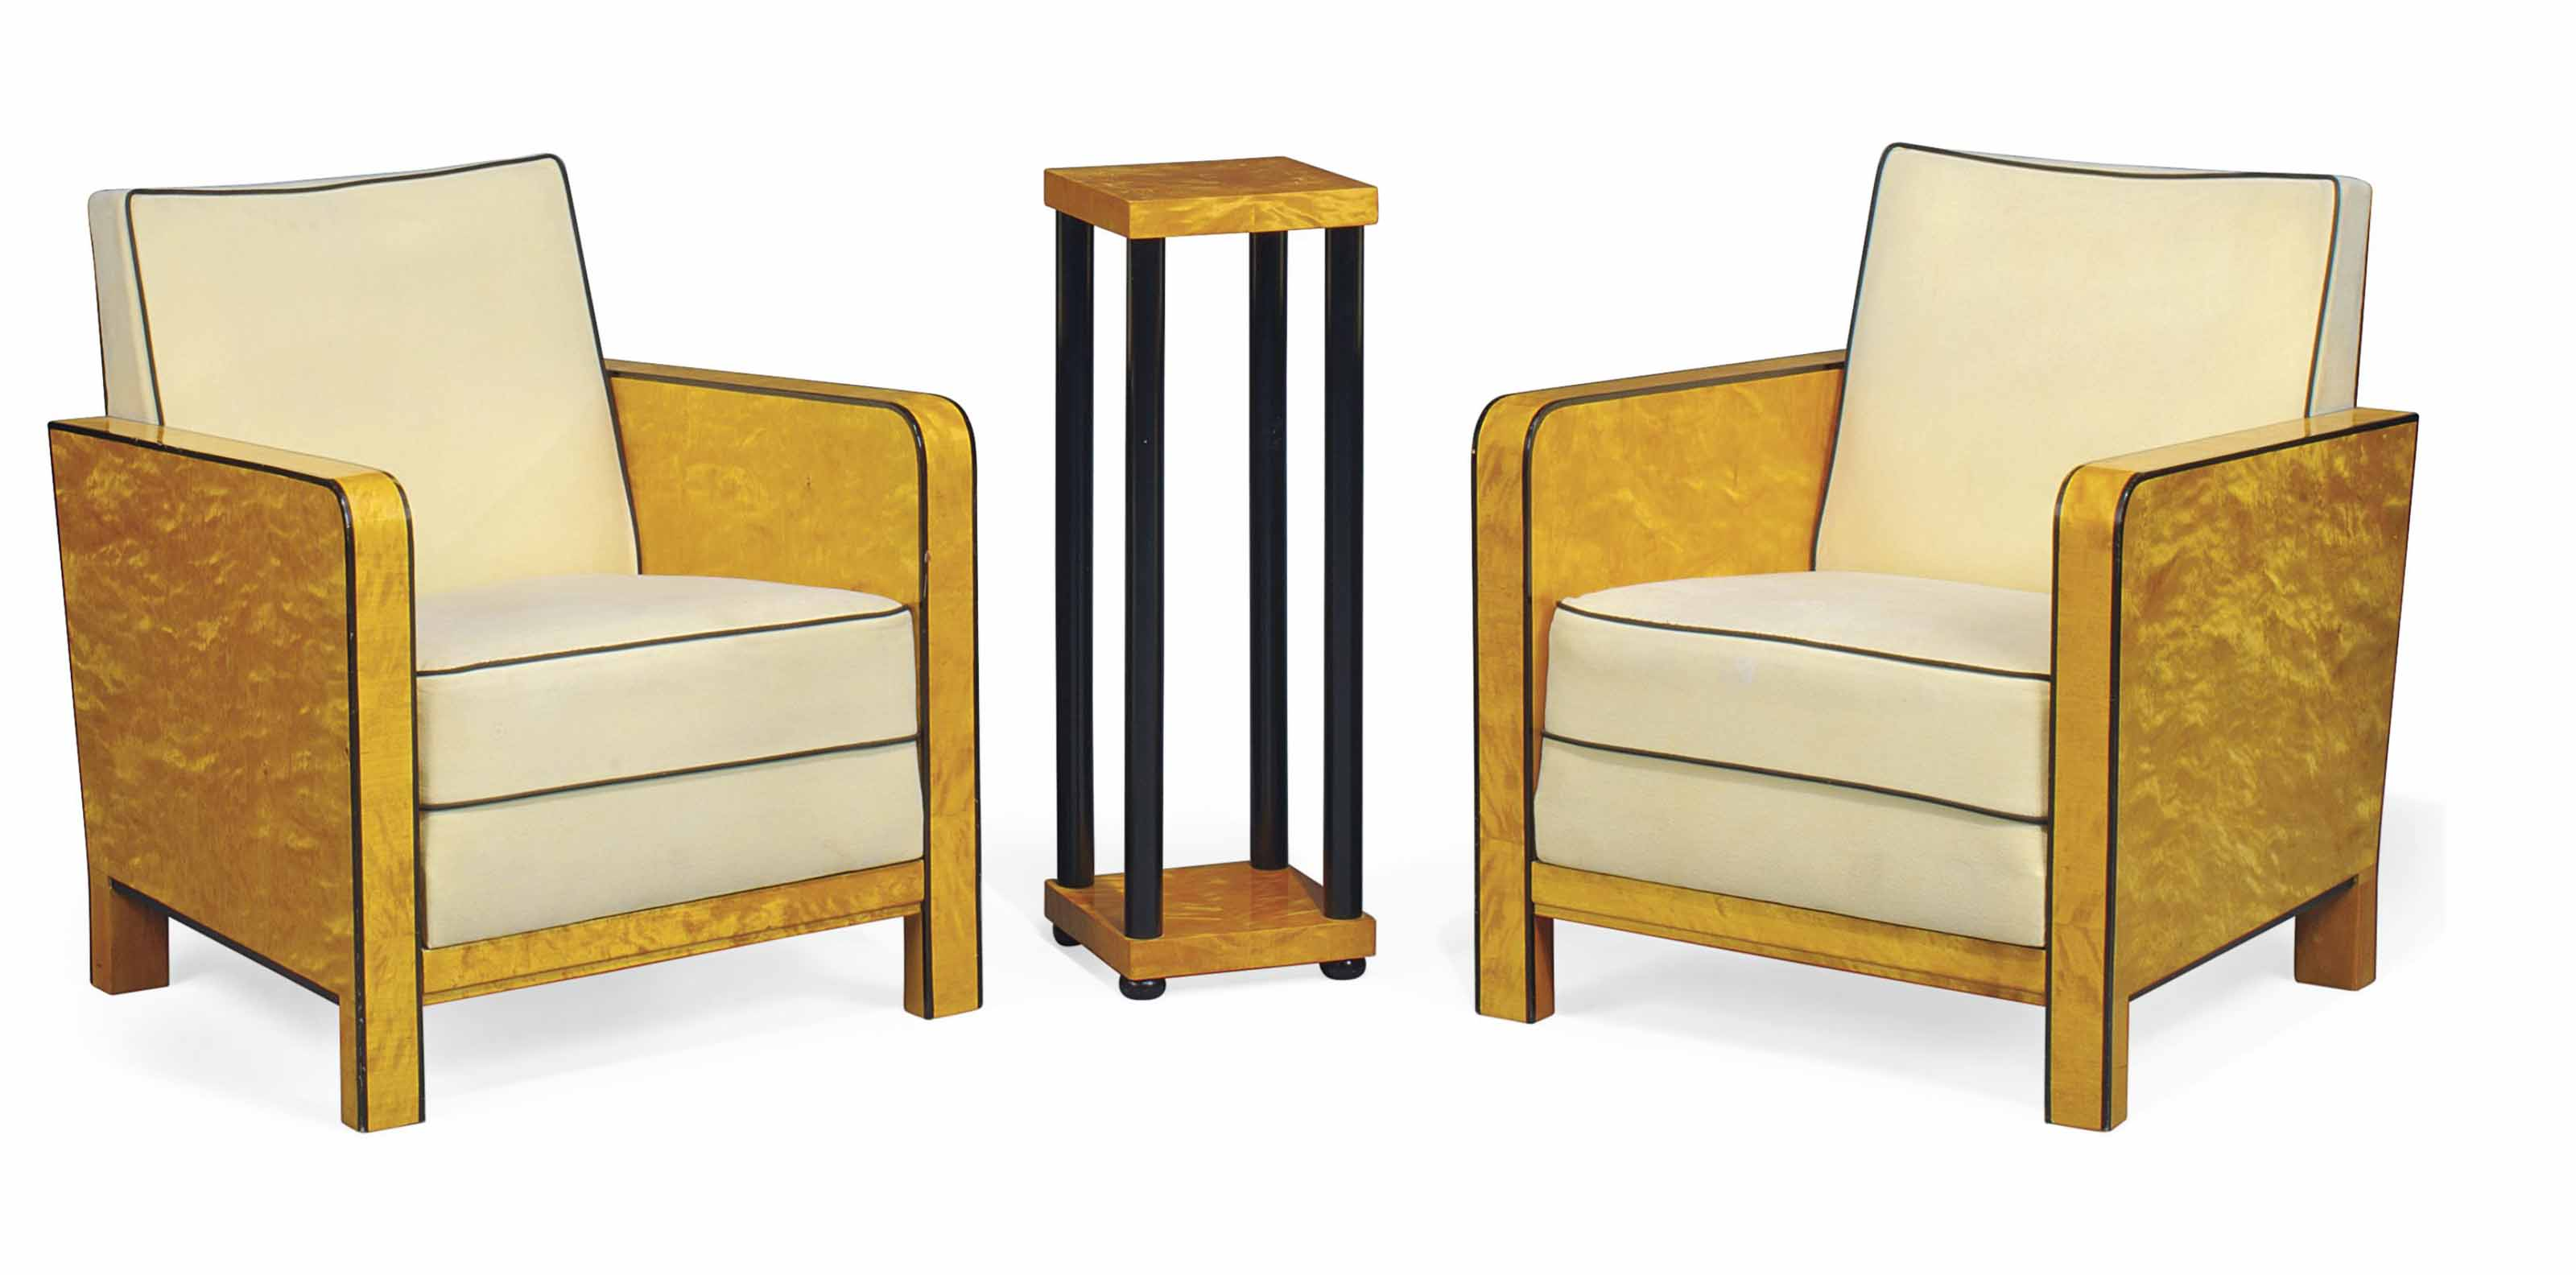 A PAIR OF BIRCH AND PART EBONI